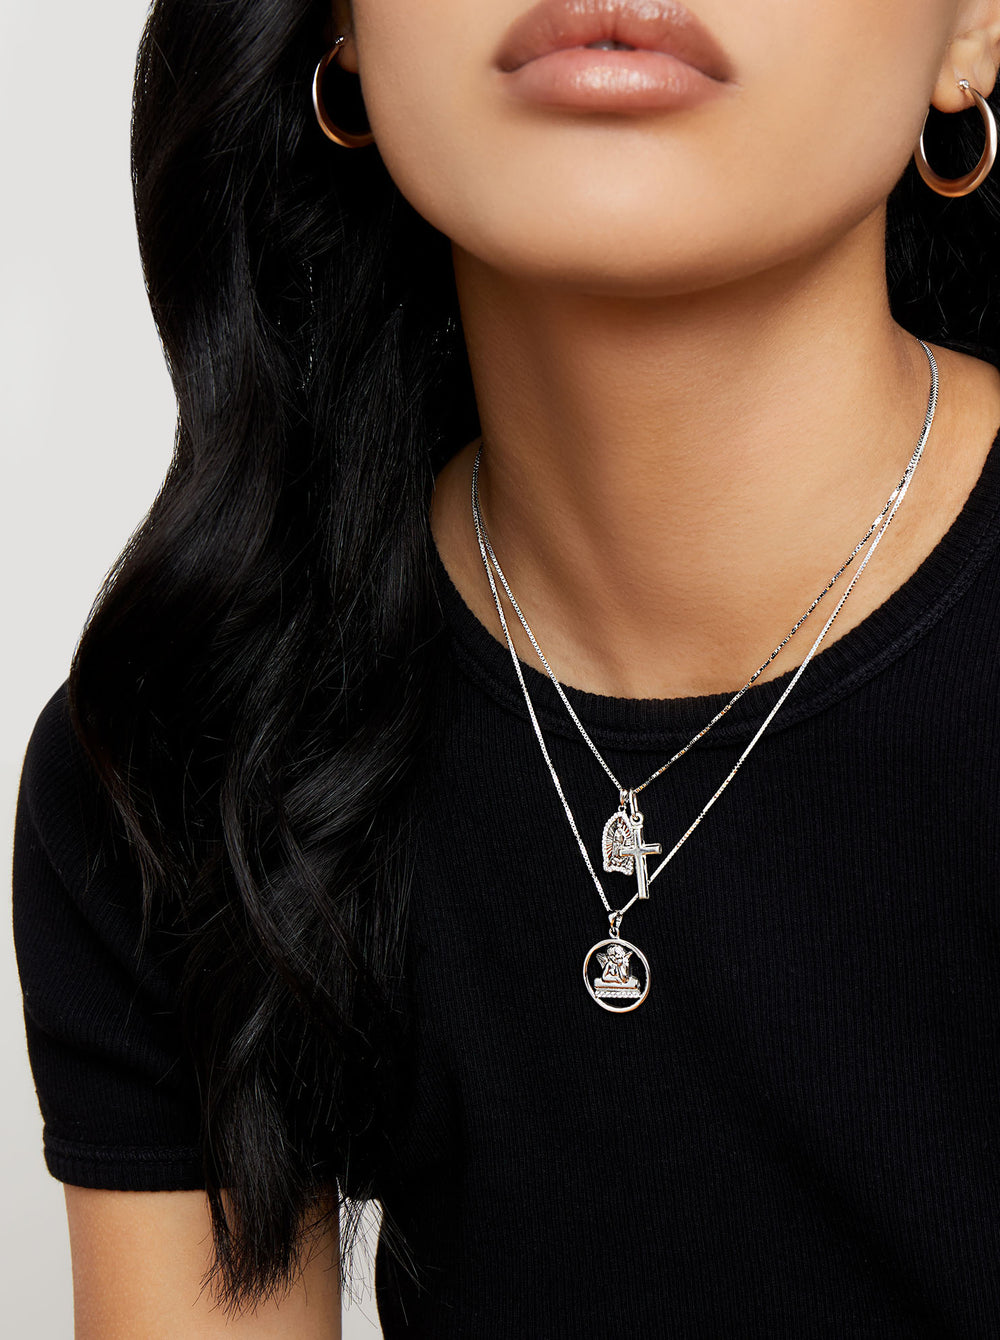 THE CHRYSTIE PAVE' ANGEL PENDANT NECKLACE